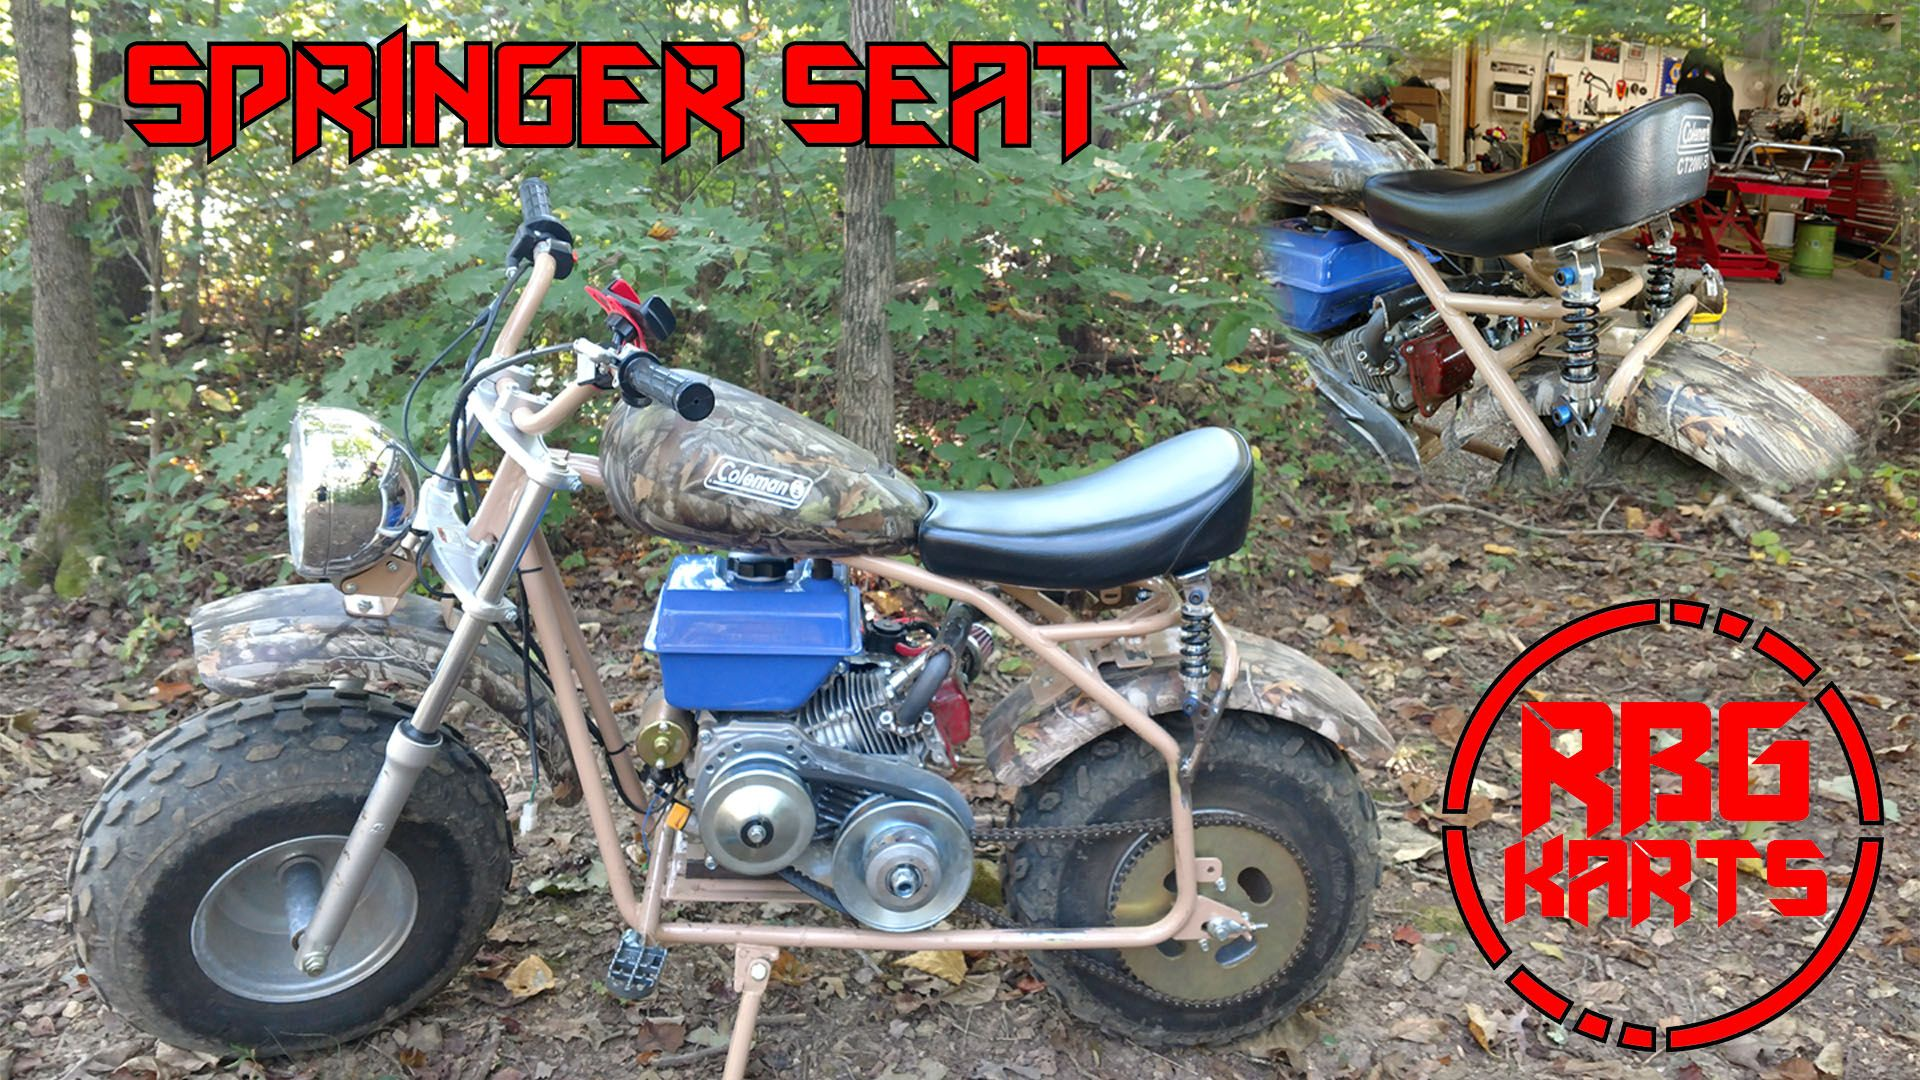 Red Beard's Garage puts a springer seat on the Coleman ct200u-ex mini bike.  You can watch the tutorial on YouTube.